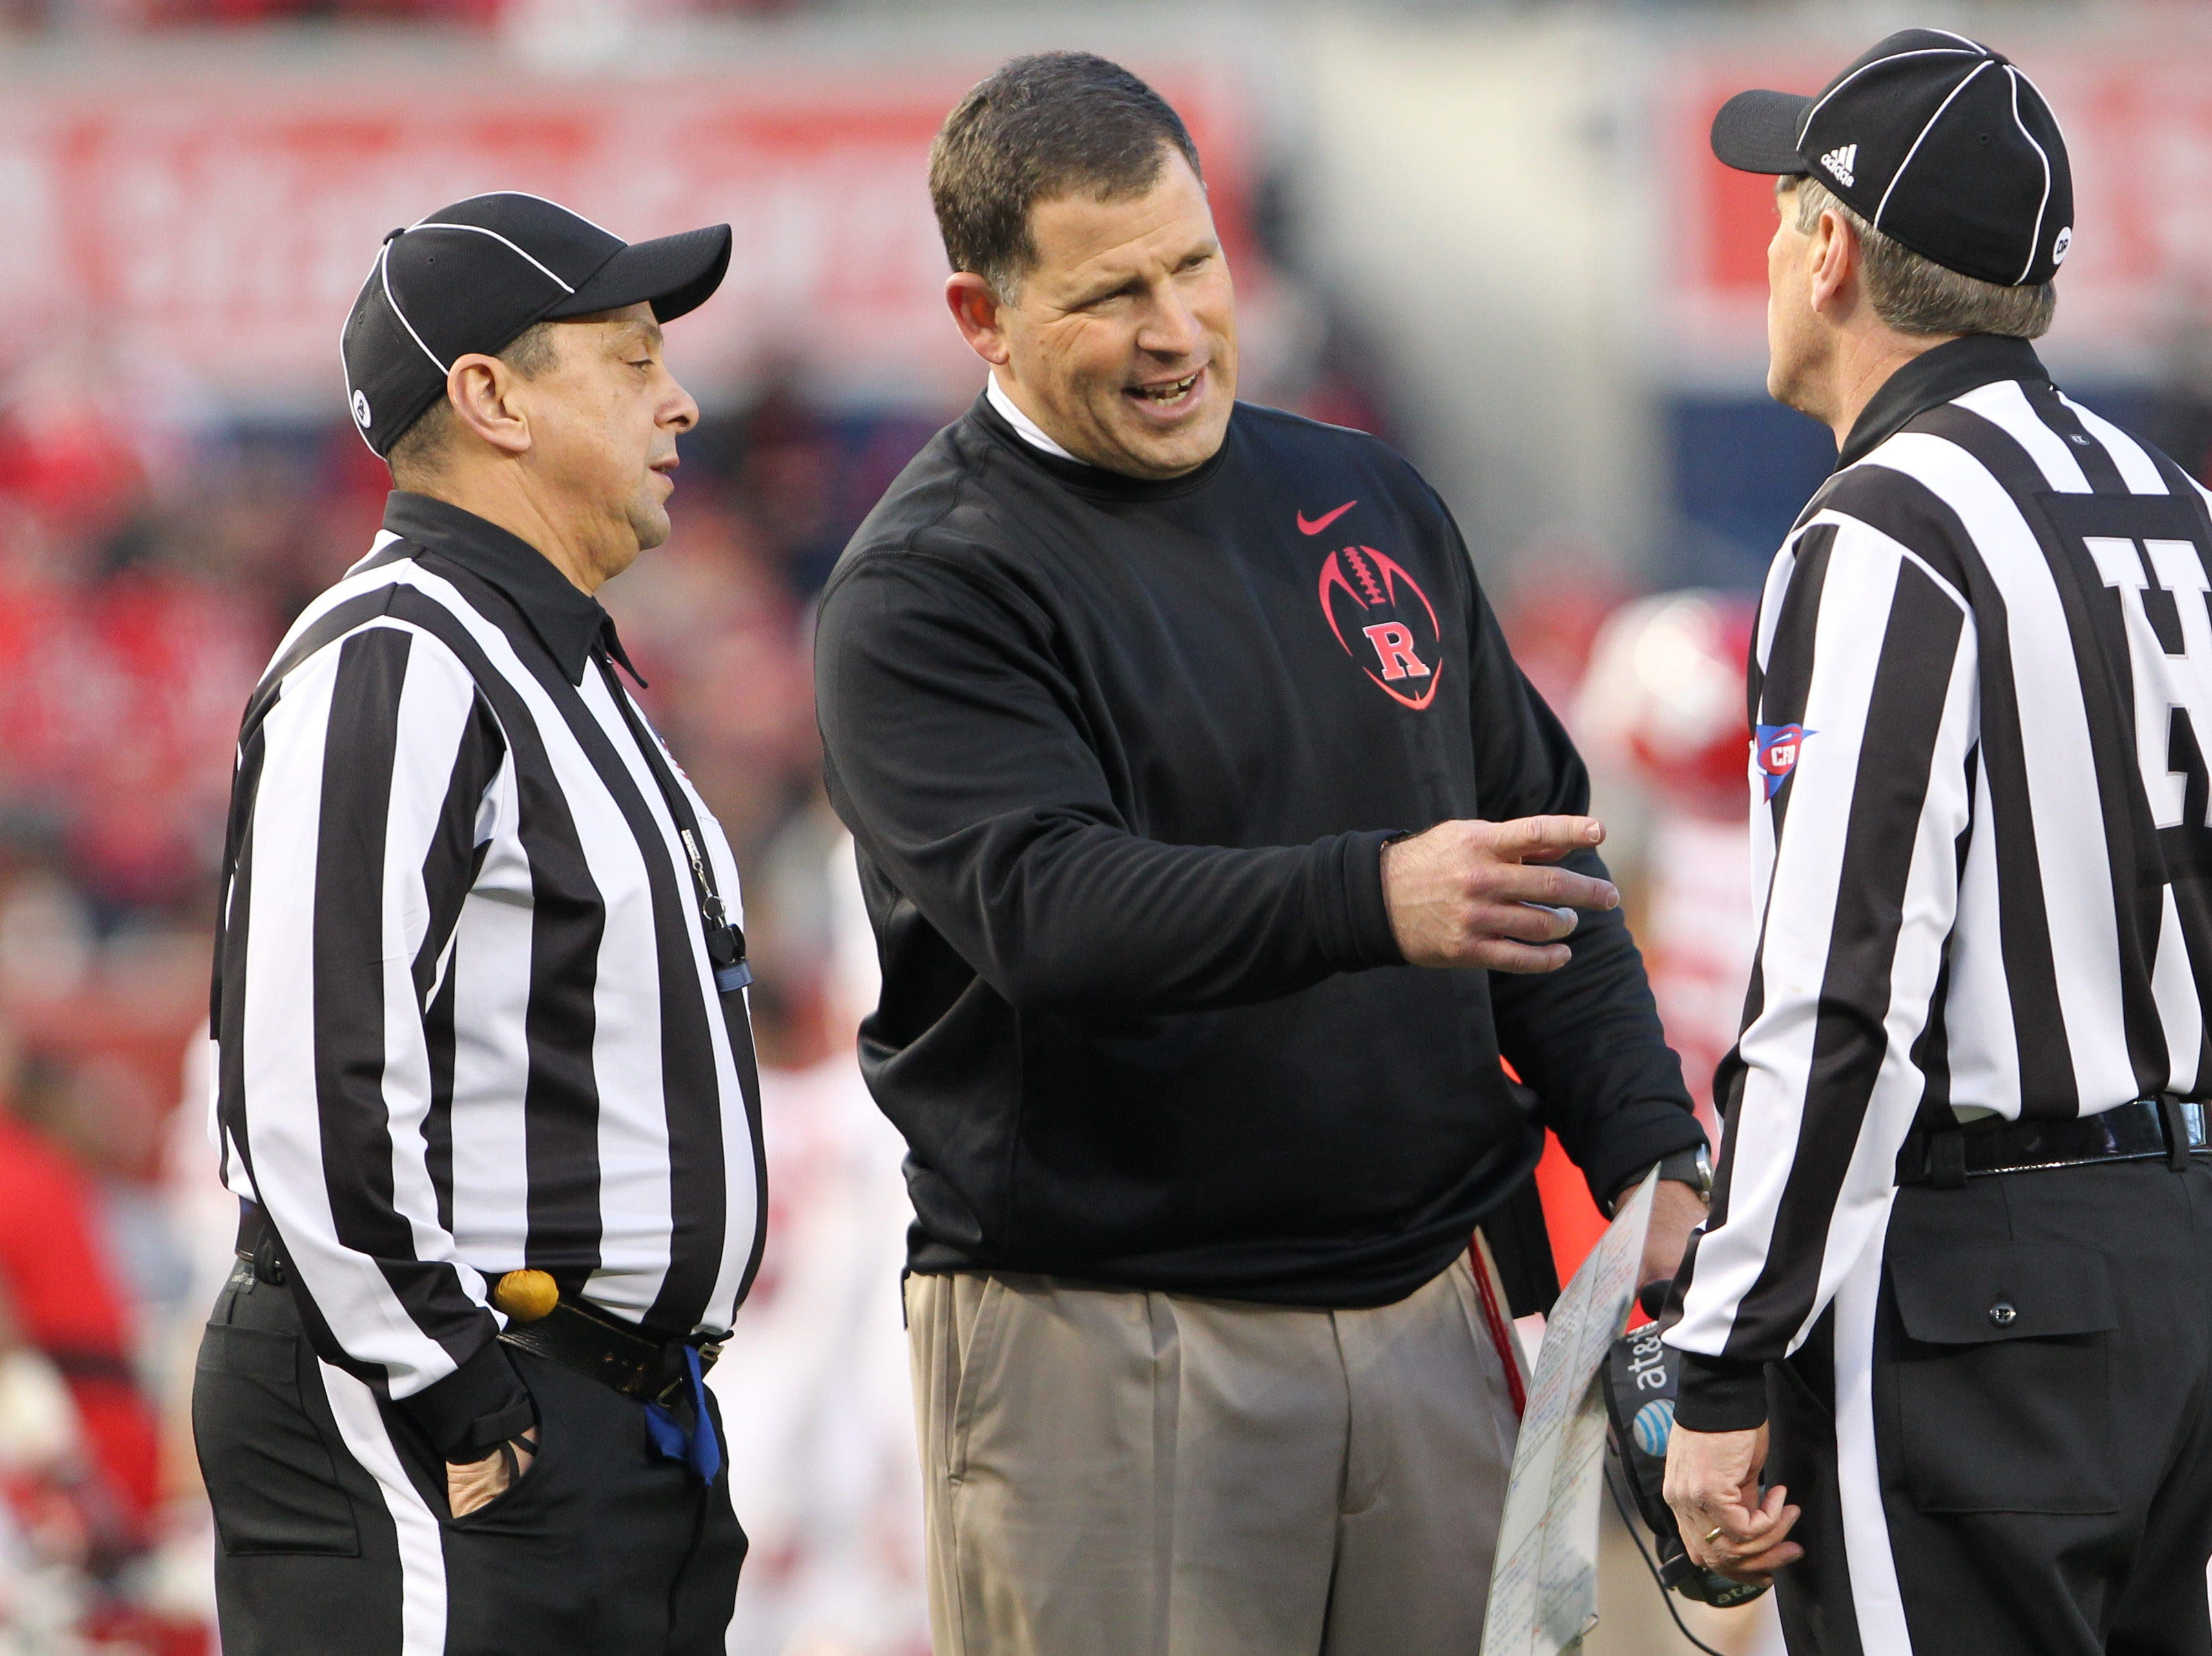 Rutgers head coach Greg Schiano discusses a call with the referee's during the first quarter against the Iowa State Cyclones of the 2011 Pinstripe Bowl at Yankee Stadium.